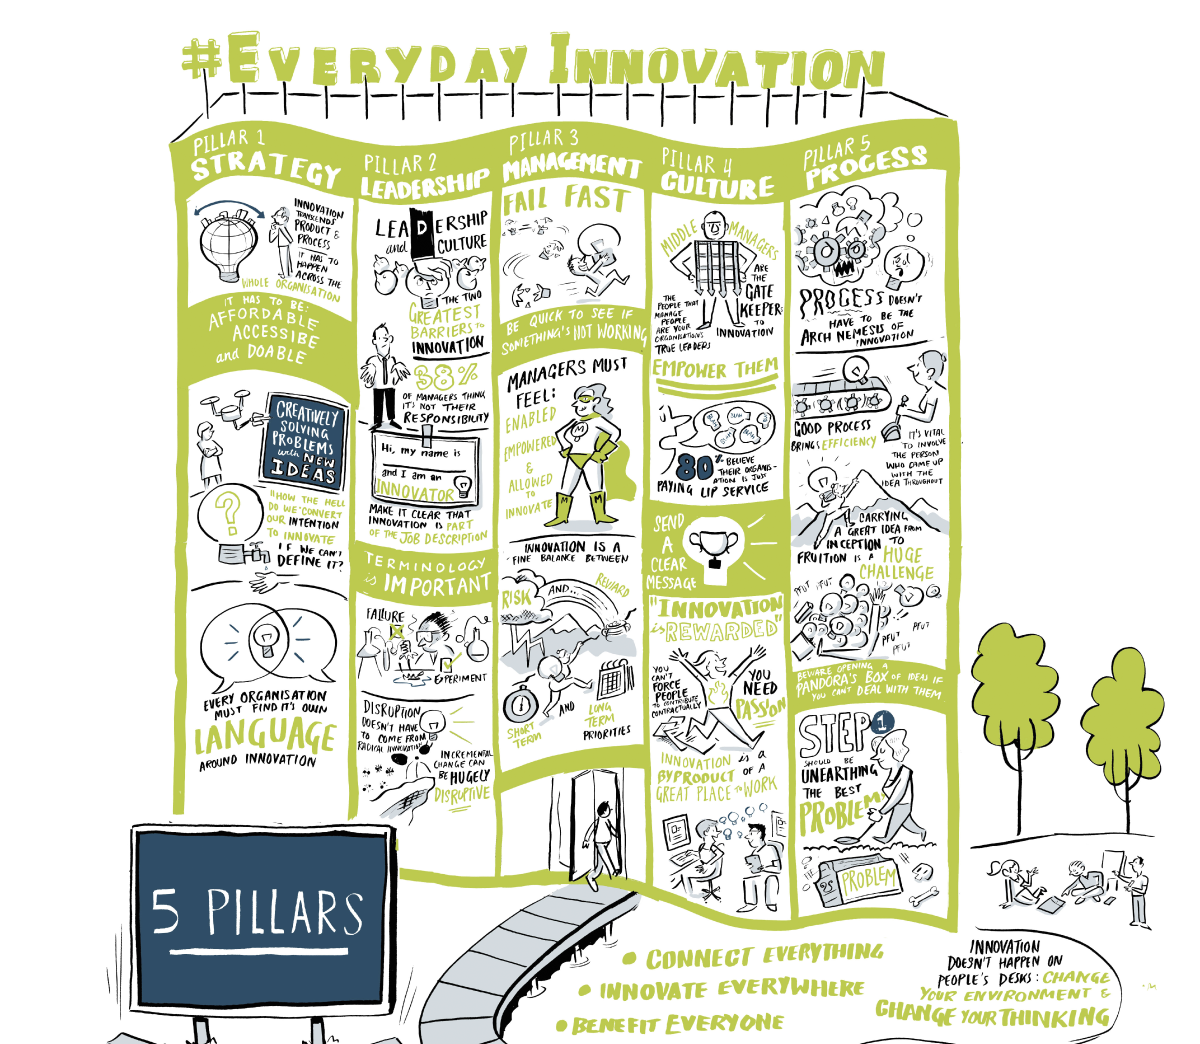 5 pillars of Everyday Innovation